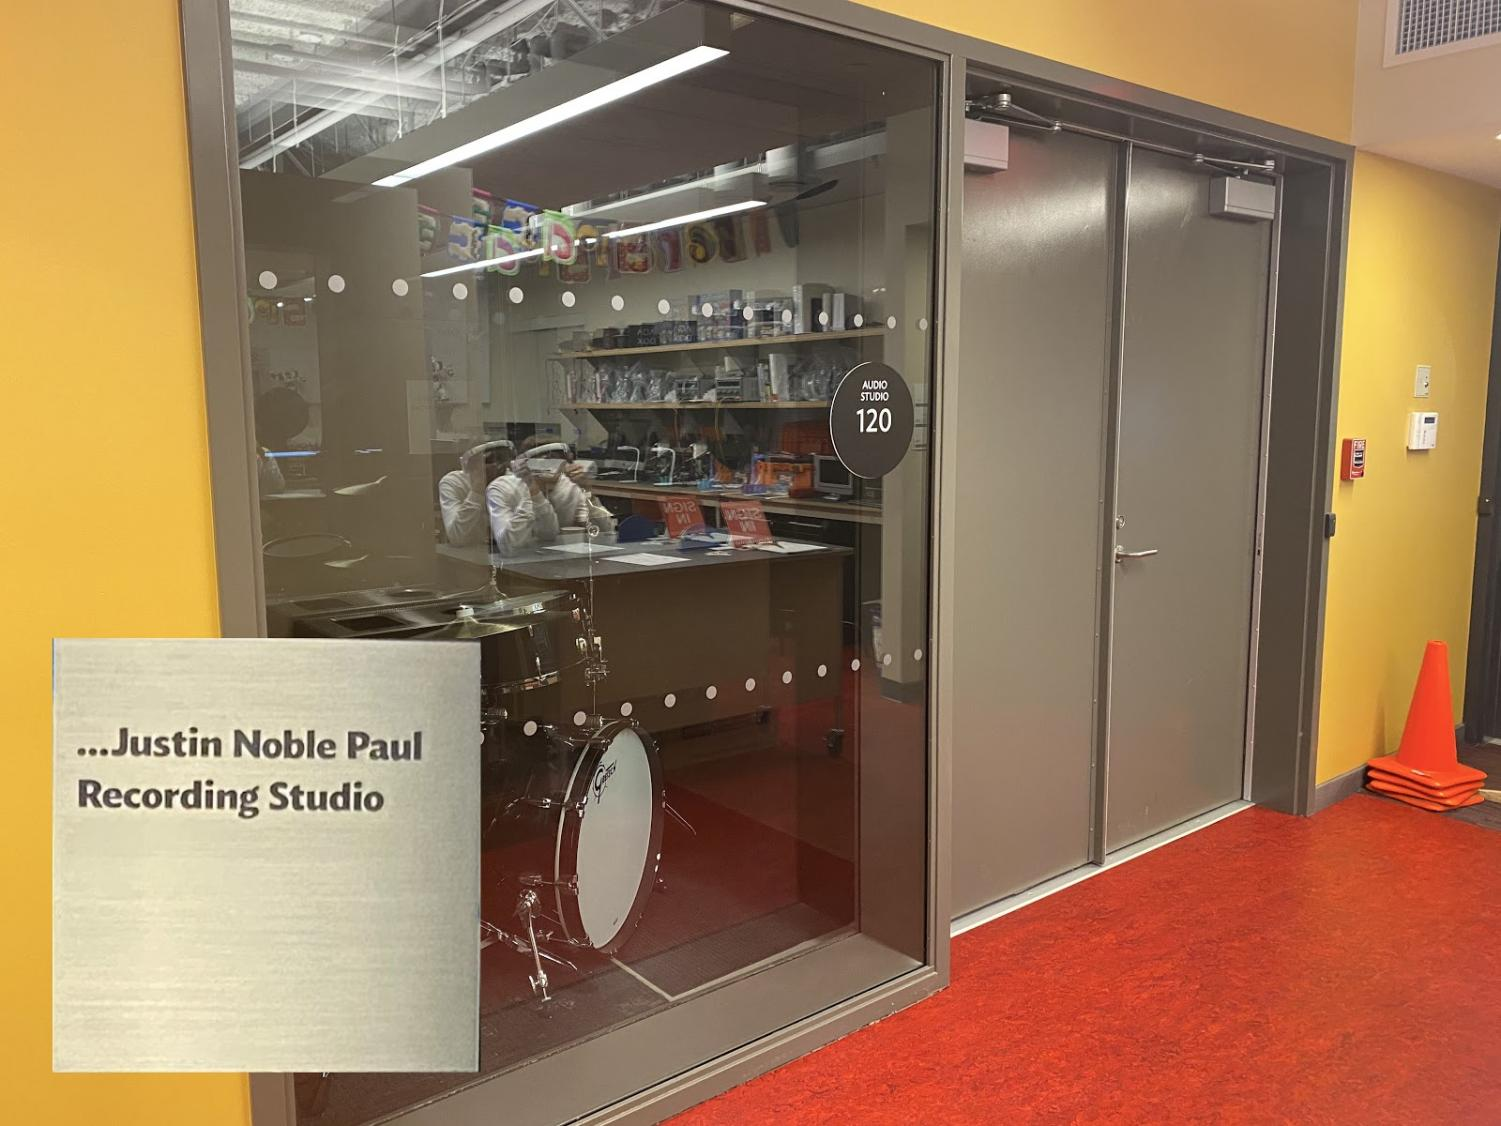 Currently being built, the Justin Noble Paul recording studio hopes to spark imagination in what is now the newest addition to the Westport Public Library.